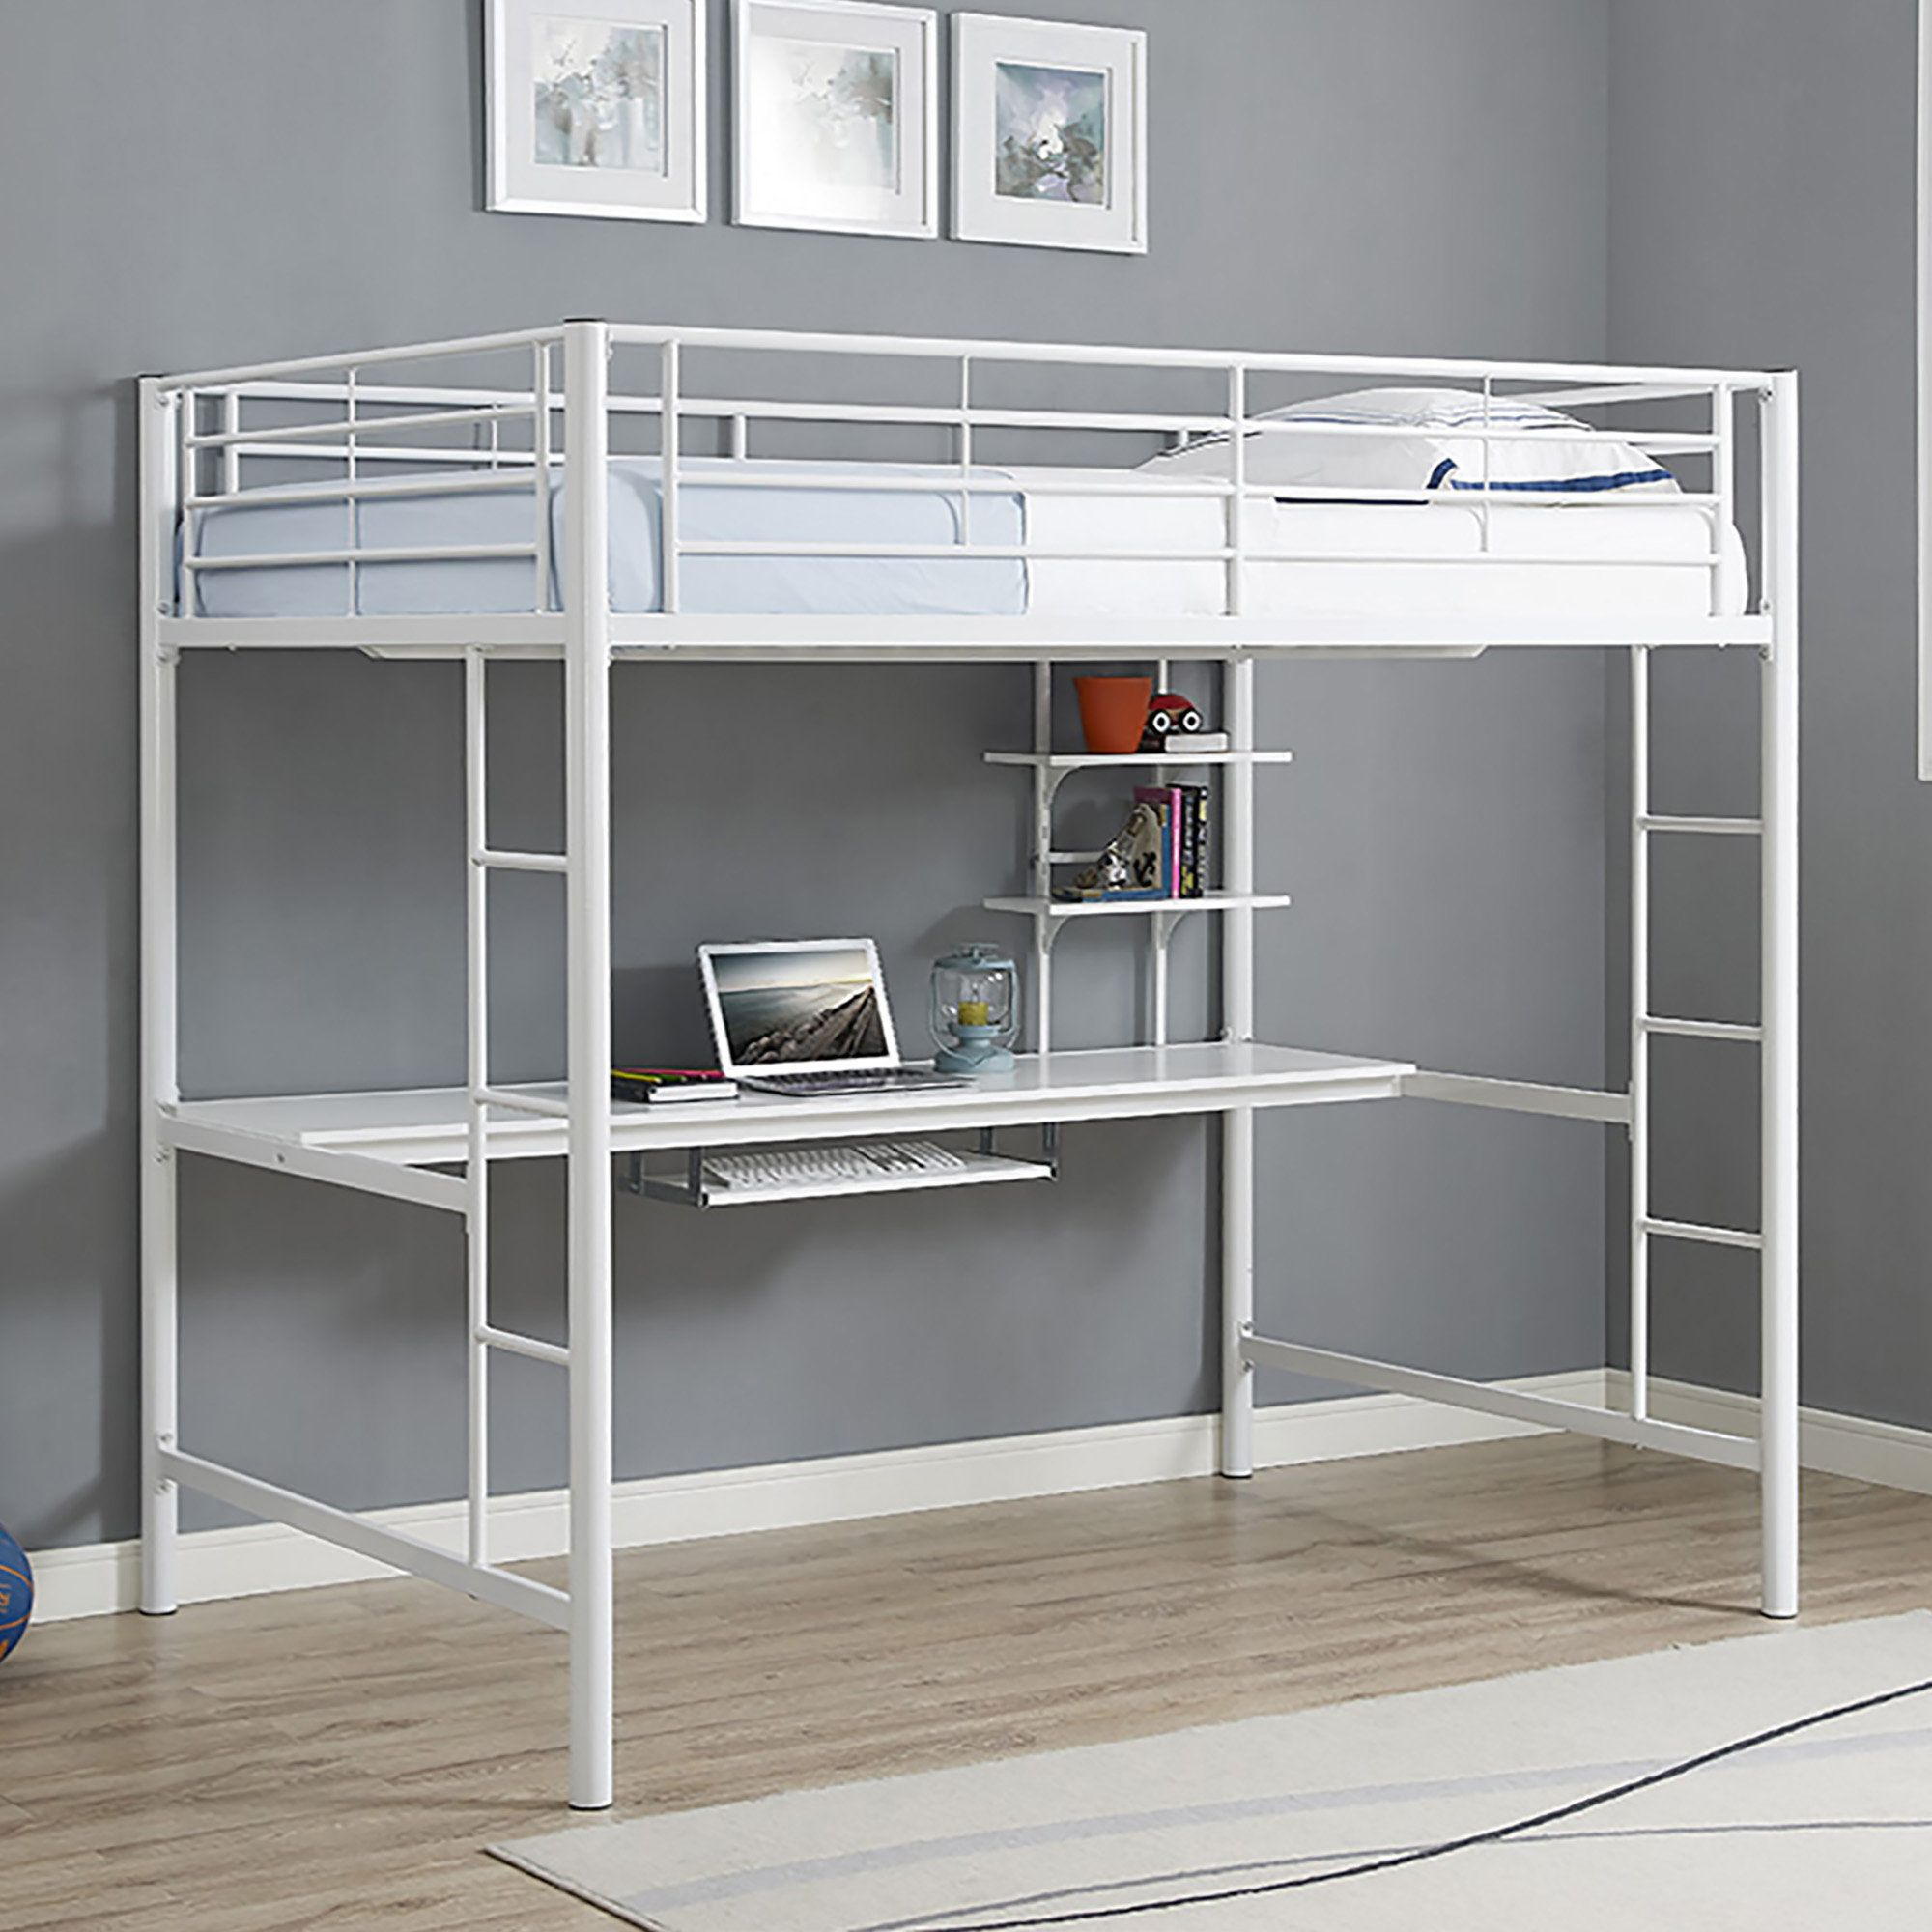 Maurice Full Loft Bed with Desk and Bookcase Bunk beds